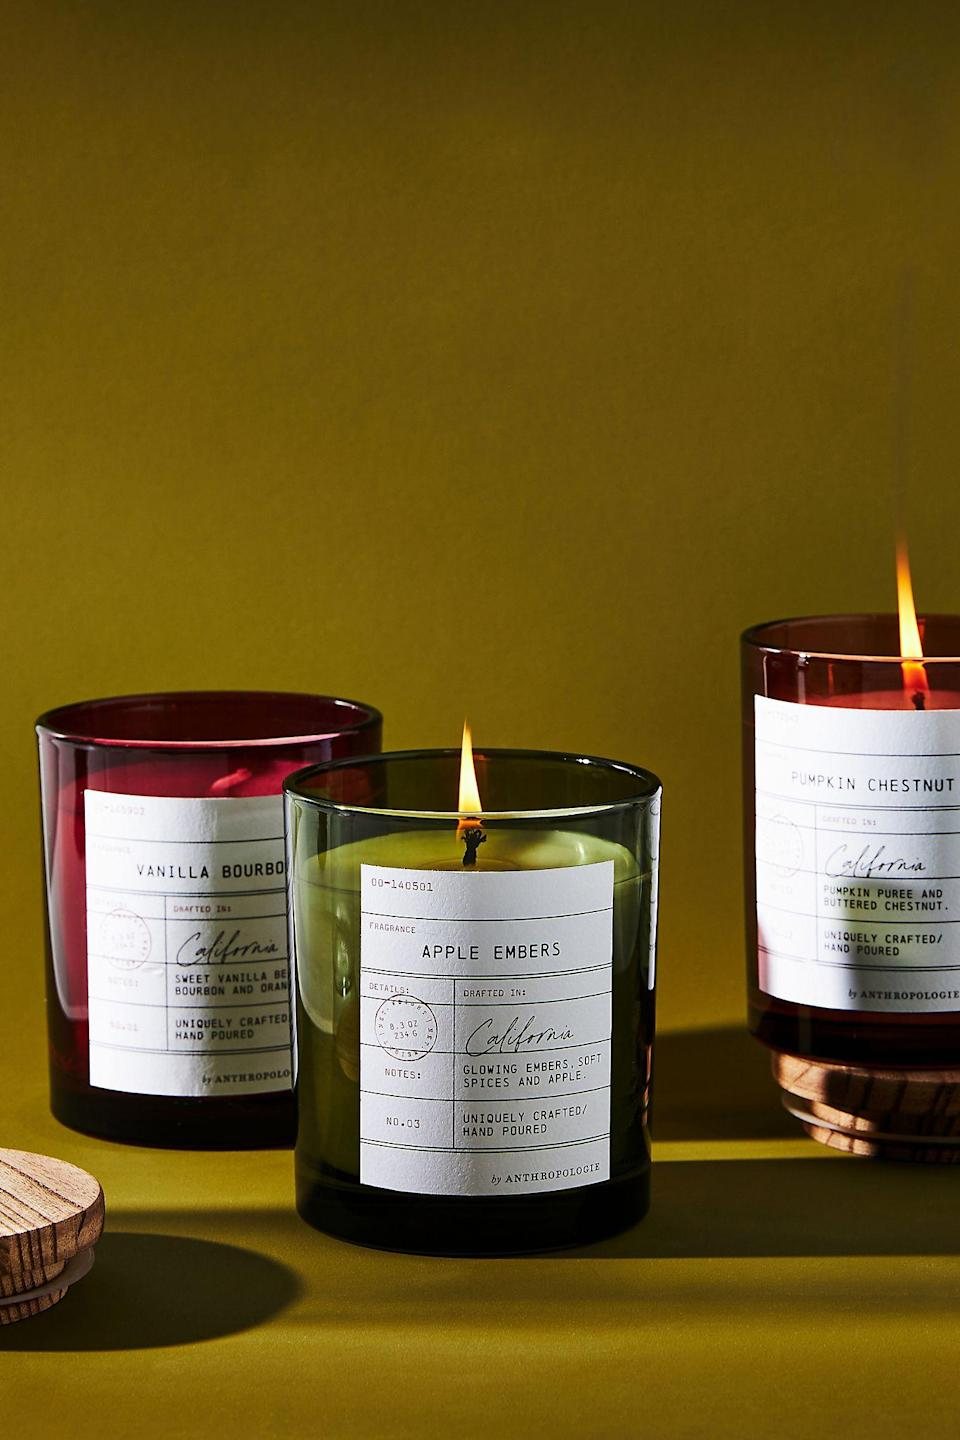 """<h3>Anthropologie Apple Embers Library Card Glass Candle</h3><br>Anthropologie is putting an academic spin on the classic fall candle — each scent (Vanilla Bourbon, Apple Embers, and Pumpkin Chestnut) comes with a library book cover card label and brings its own unique story into your living space. <br><br><em>Shop <strong><a href=""""https://www.anthropologie.com/shop/library-card-glass-candle"""" rel=""""nofollow noopener"""" target=""""_blank"""" data-ylk=""""slk:Anthropologie"""" class=""""link rapid-noclick-resp"""">Anthropologie</a></strong></em><br><br><strong>Anthropologie</strong> Library Card Glass Candle, $, available at <a href=""""https://go.skimresources.com/?id=30283X879131&url=https%3A%2F%2Fwww.anthropologie.com%2Fshop%2Flibrary-card-glass-candle"""" rel=""""nofollow noopener"""" target=""""_blank"""" data-ylk=""""slk:Anthropologie"""" class=""""link rapid-noclick-resp"""">Anthropologie</a>"""